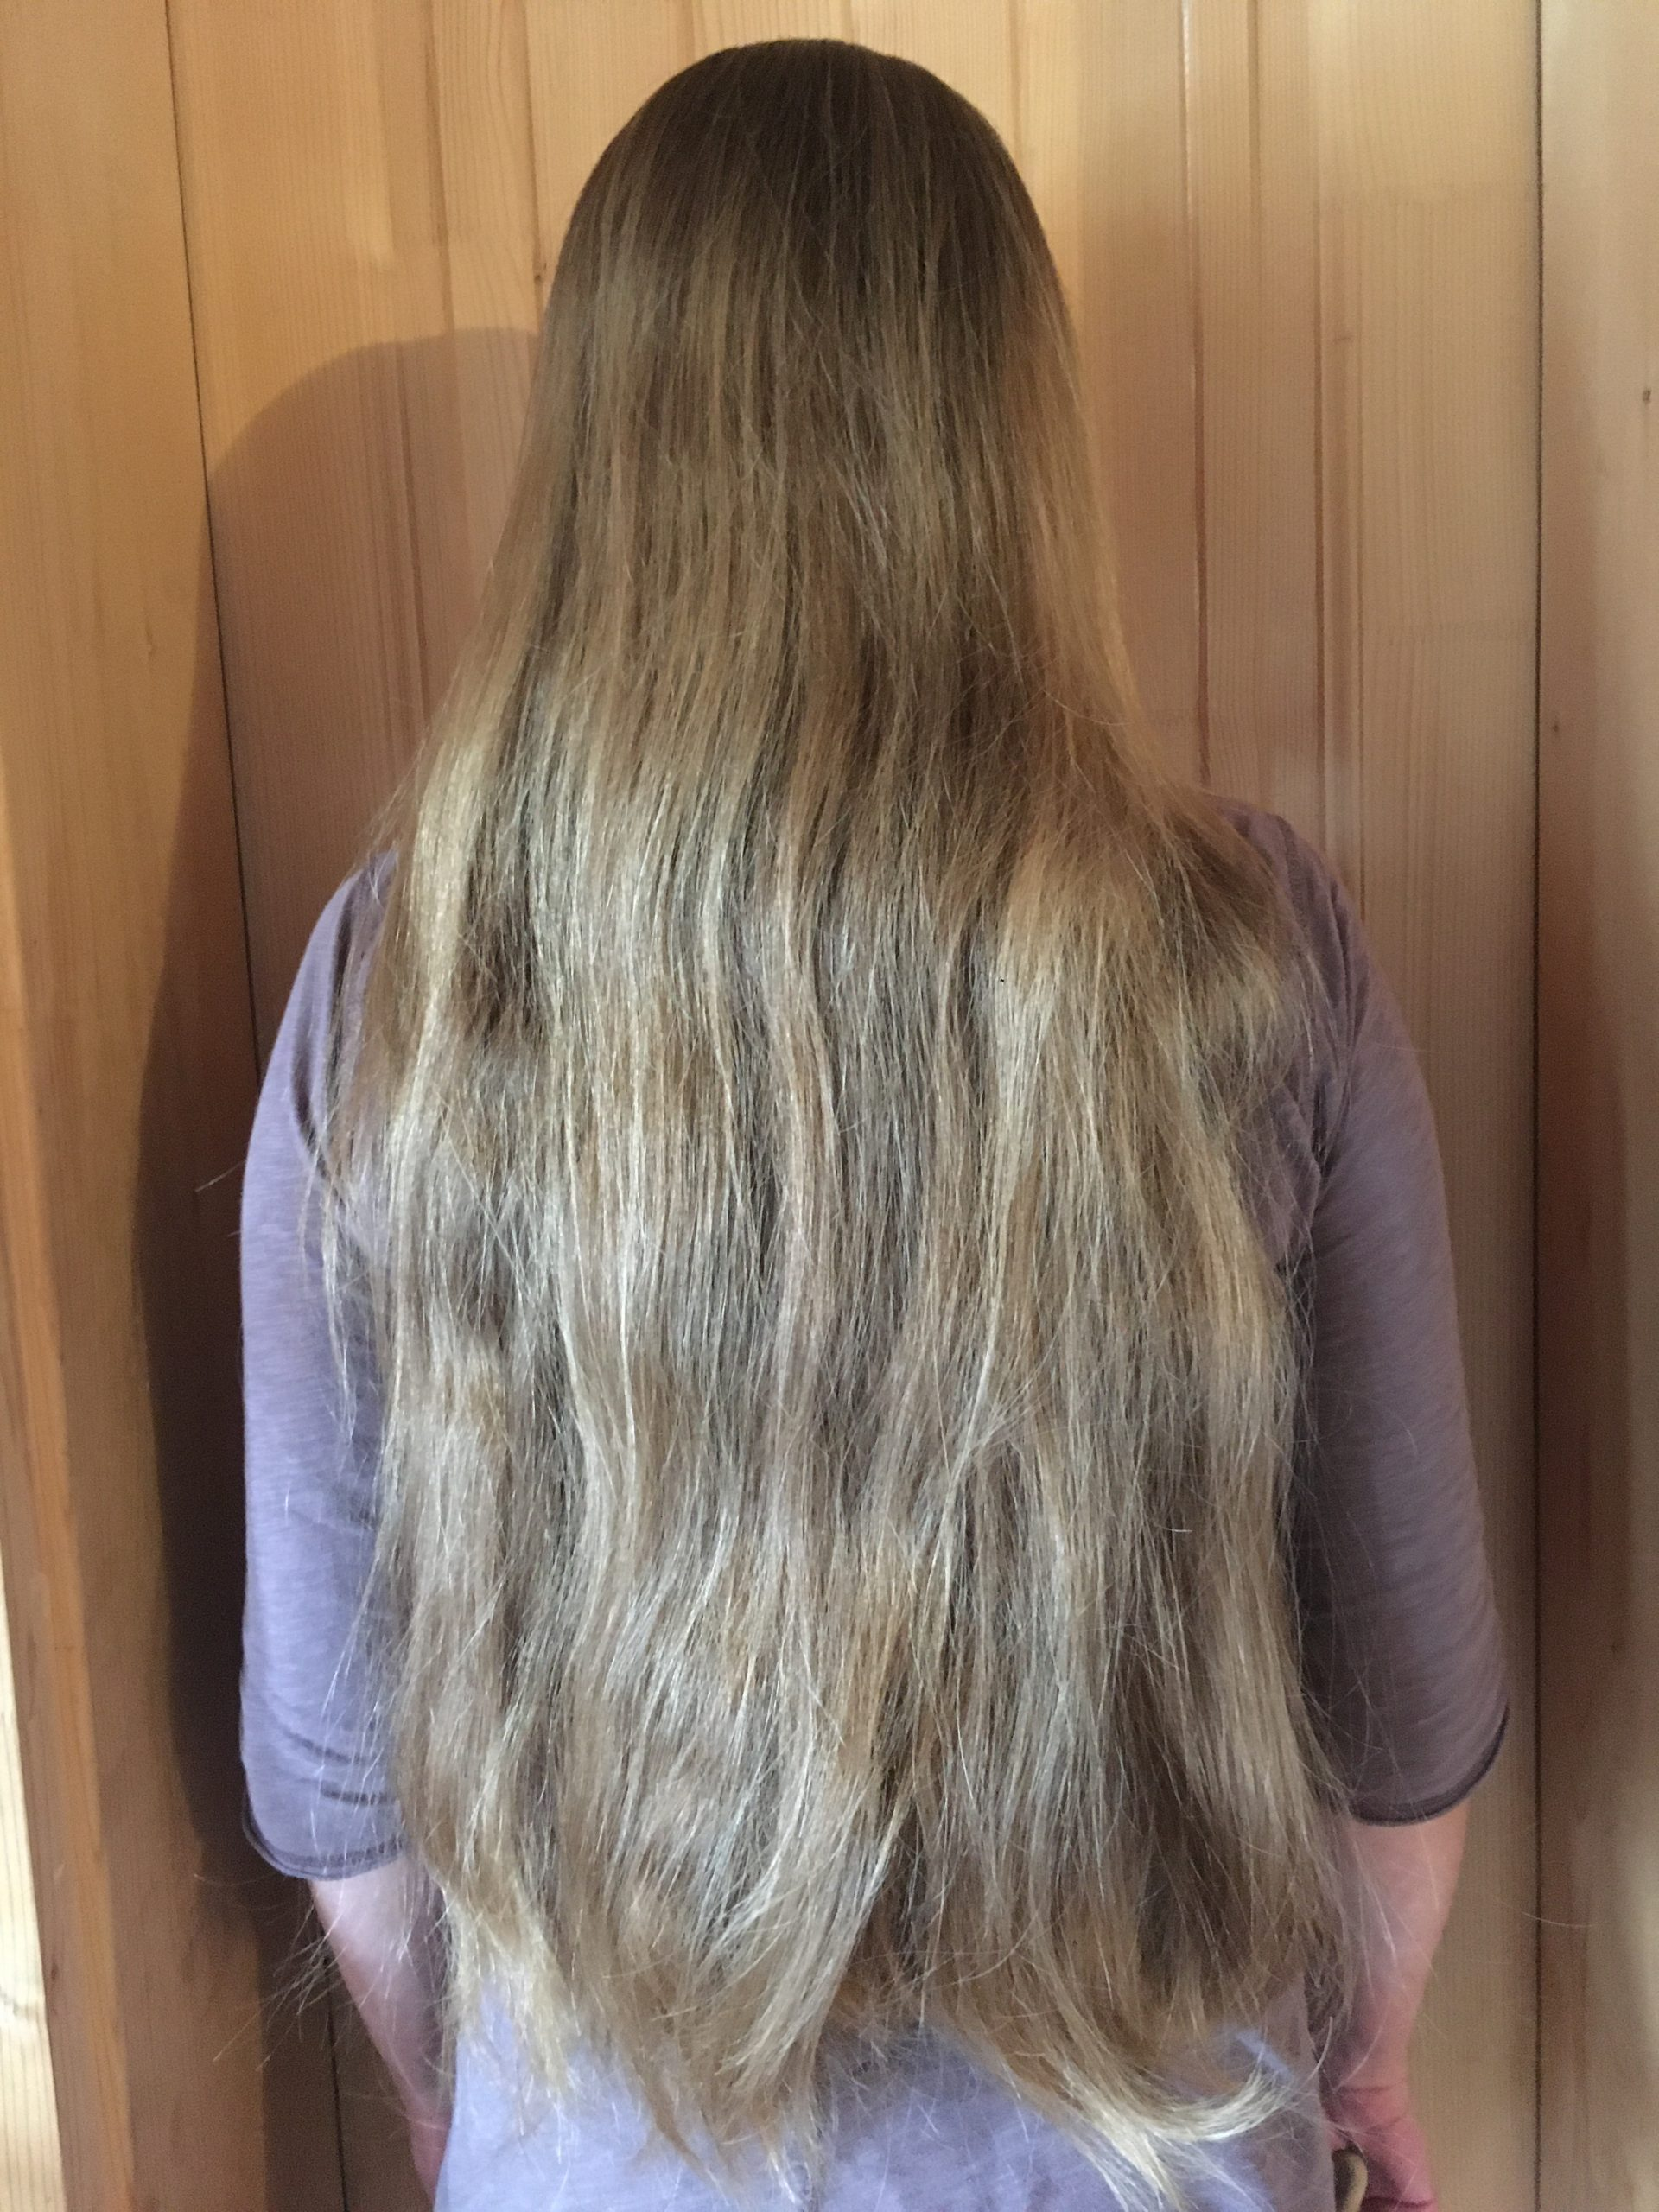 22 Inches long, 4 Inches thick Blonde Hair for Sale